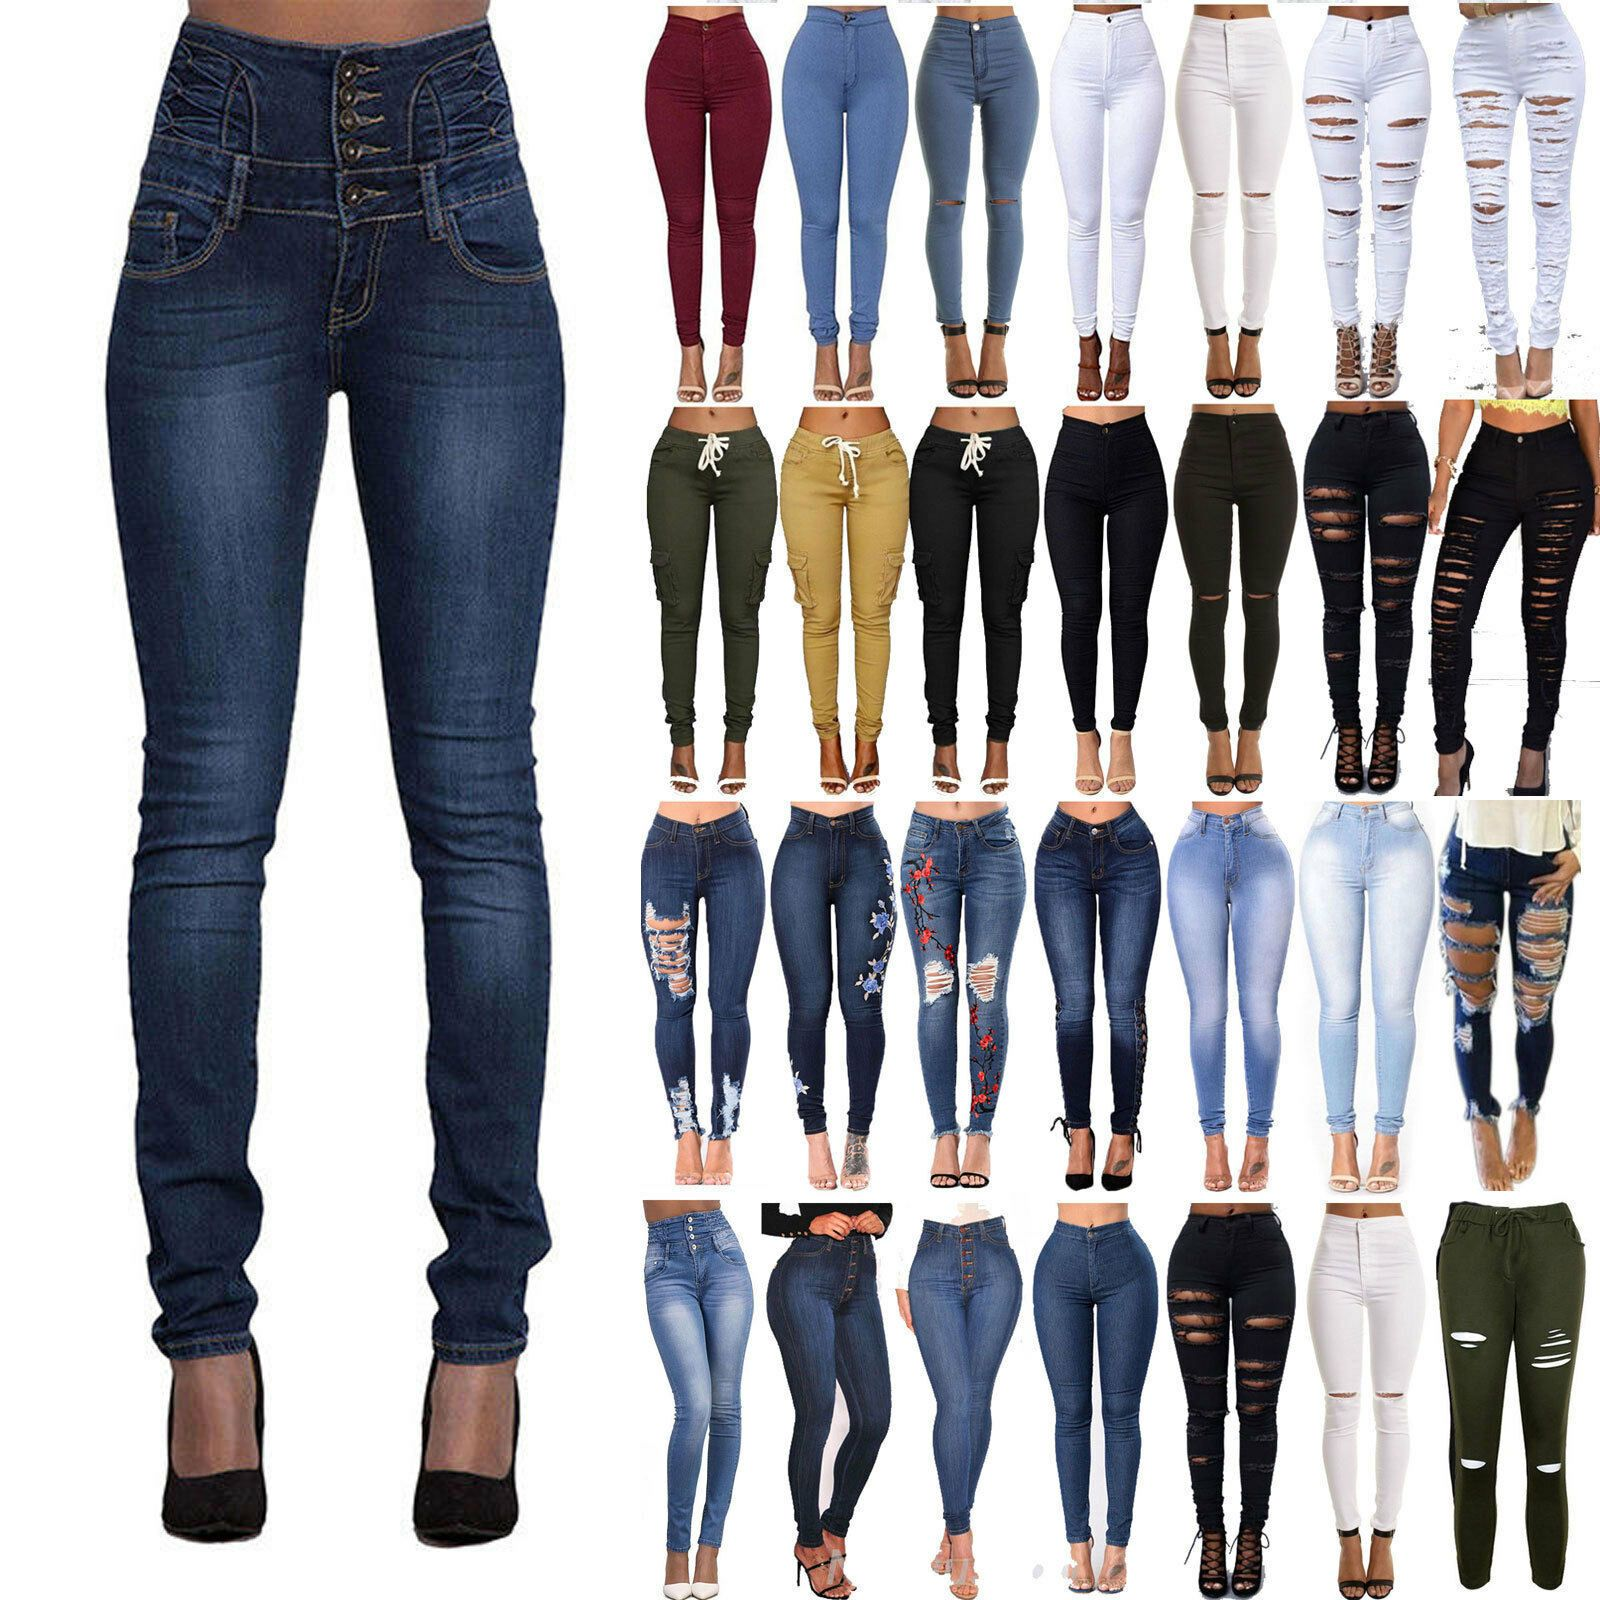 Womens Oversized Faded Slim Fit Skinny Stretchy Denim Trousers Jeans Pants